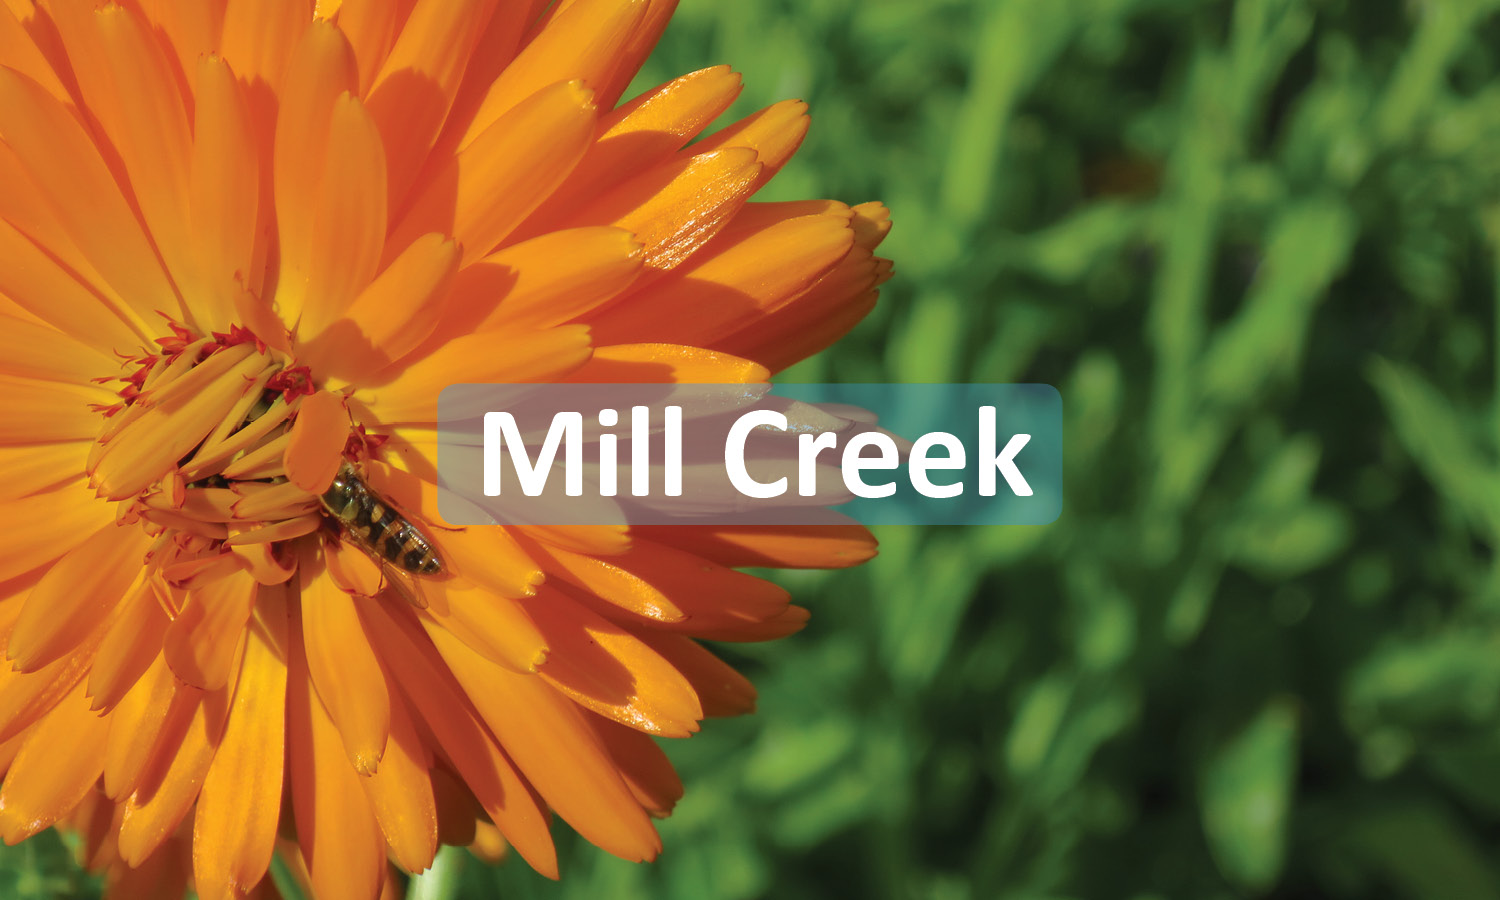 City of Mill Creek Button